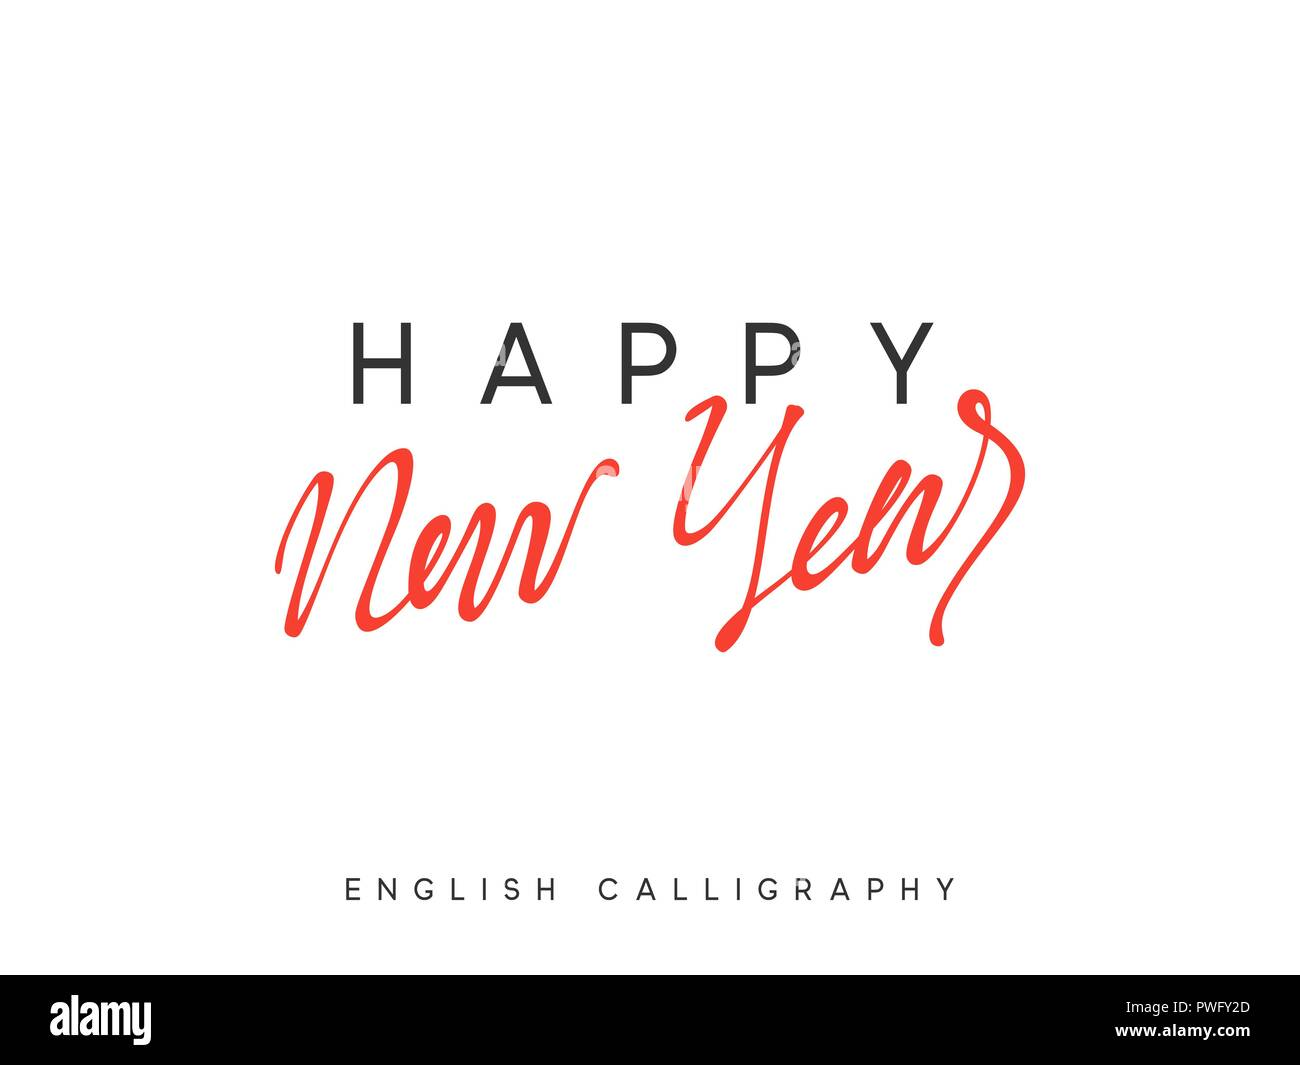 Text Happy New Year. Xmas calligraphy lettering Stock Vector Art ...